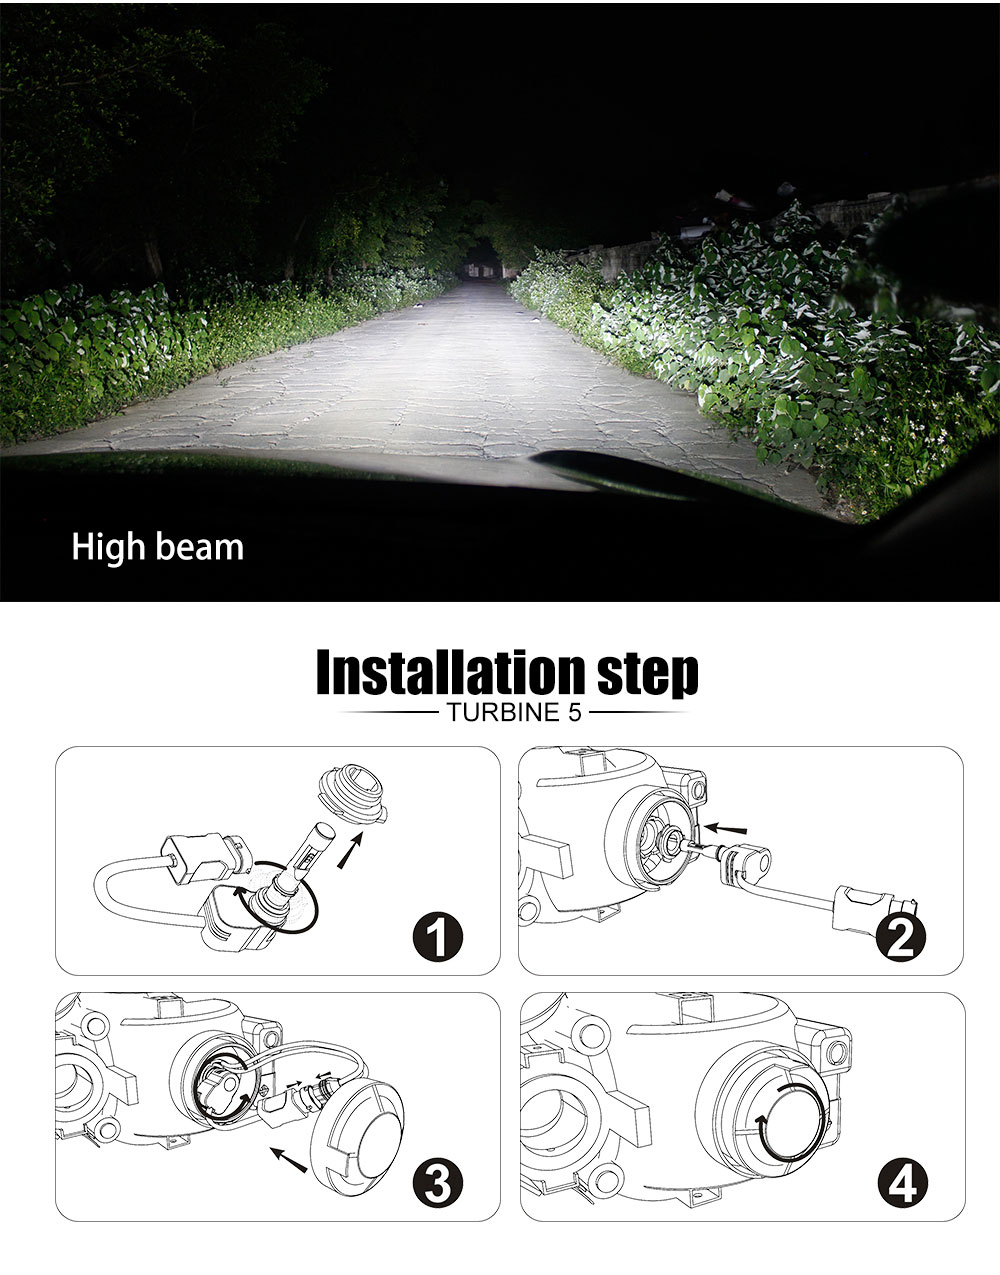 2017 Flydee Seoul CSP Led Car Light 4200LM CSP T5 Turbine LED Headlight with Fan for H4 H7 H11